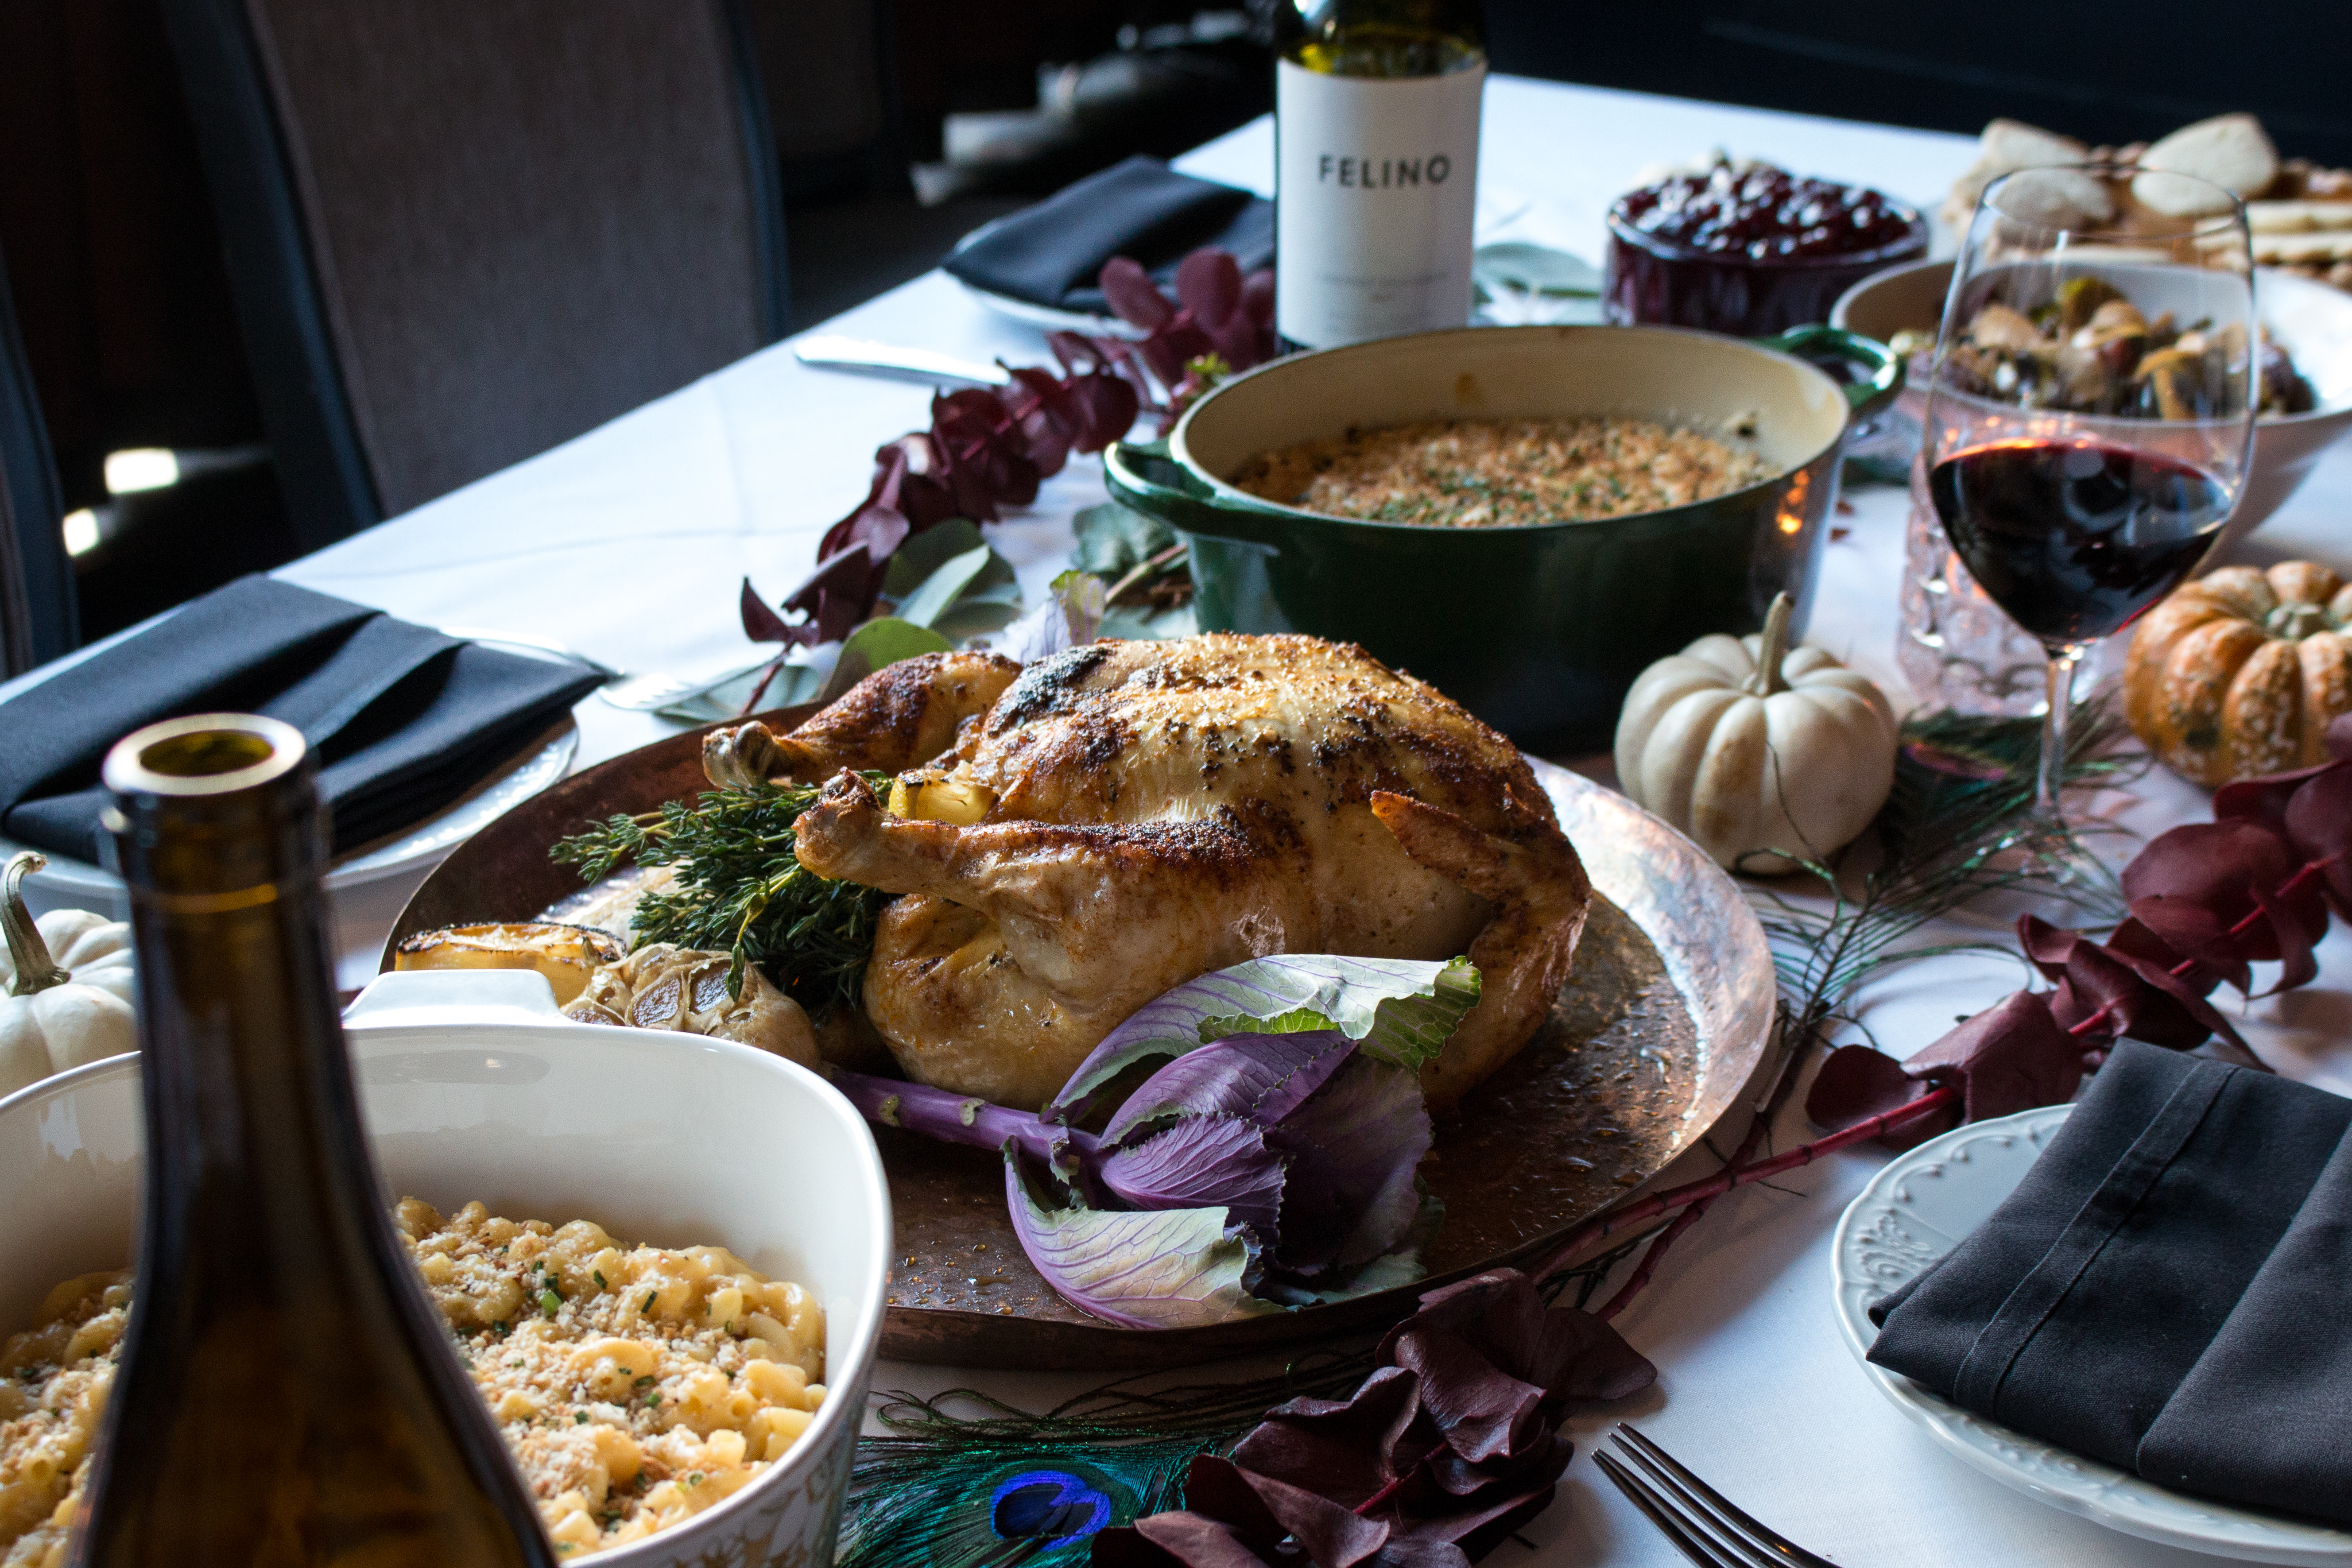 A table with a roasted turkey and bottles of wine.